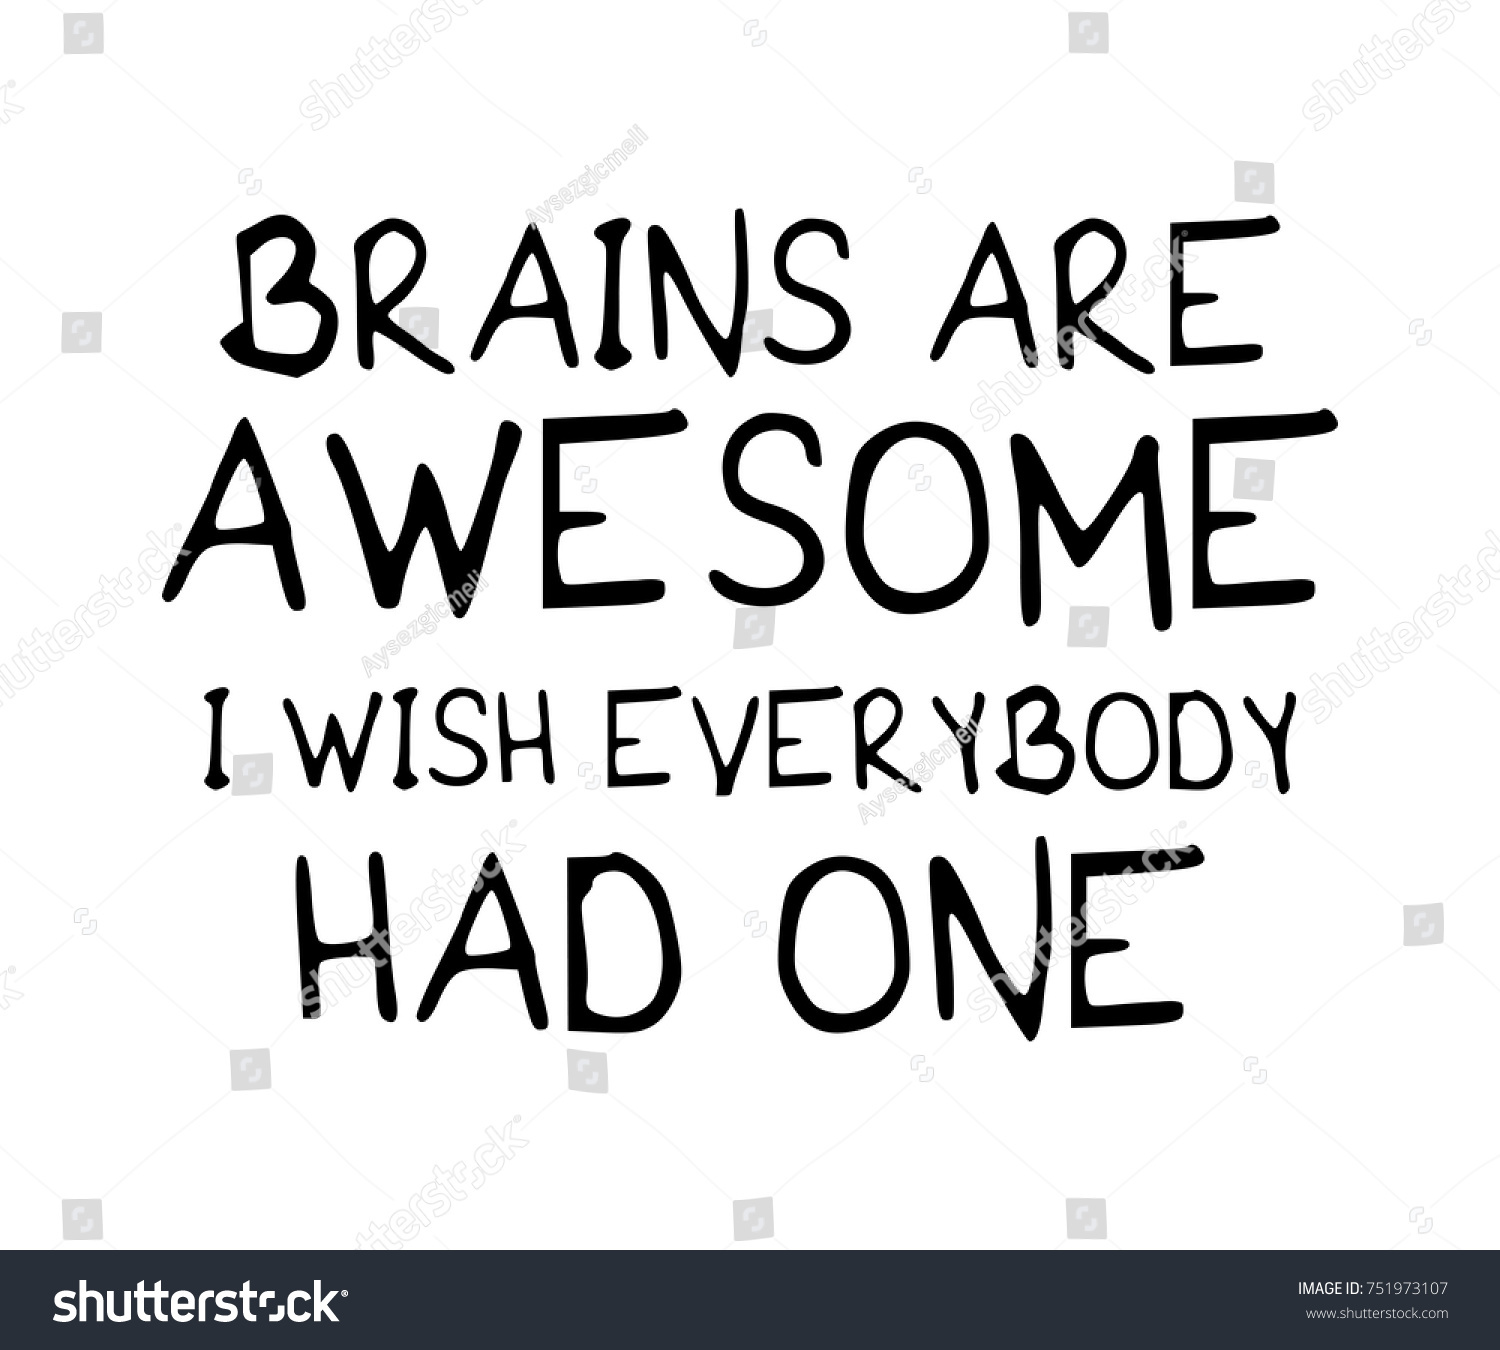 5becf7223 Brains are awesome I wish everybody had one / Funny quote typography /  Vector illustration design.